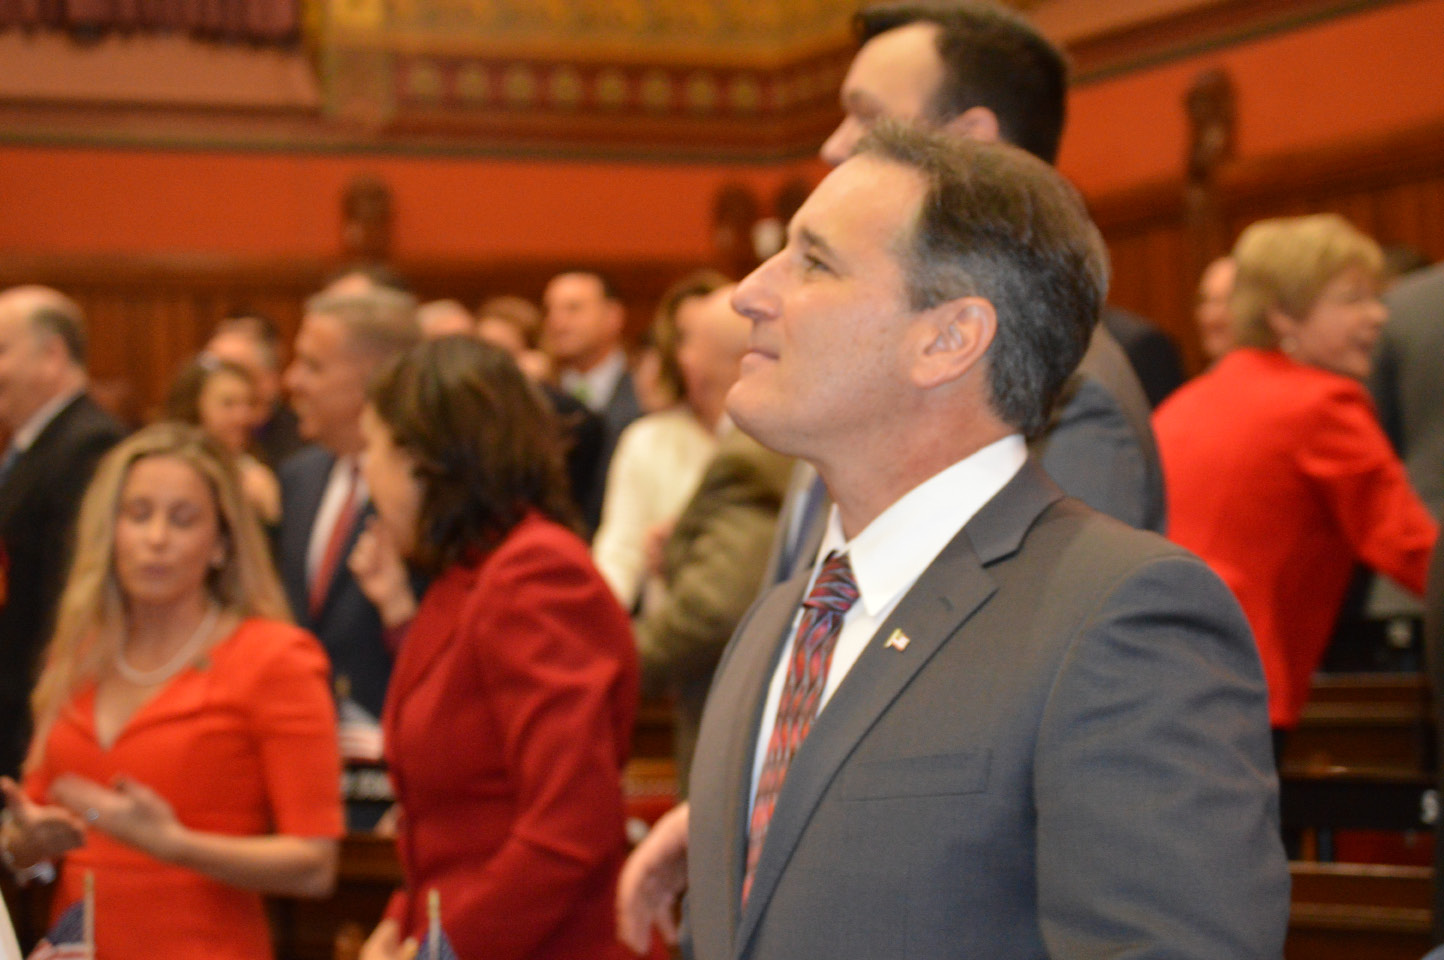 State Rep. John Fusco on the first day of the legislative session on Wednesday, Jan. 4, 2017. | Mike Savino, Record-Journal